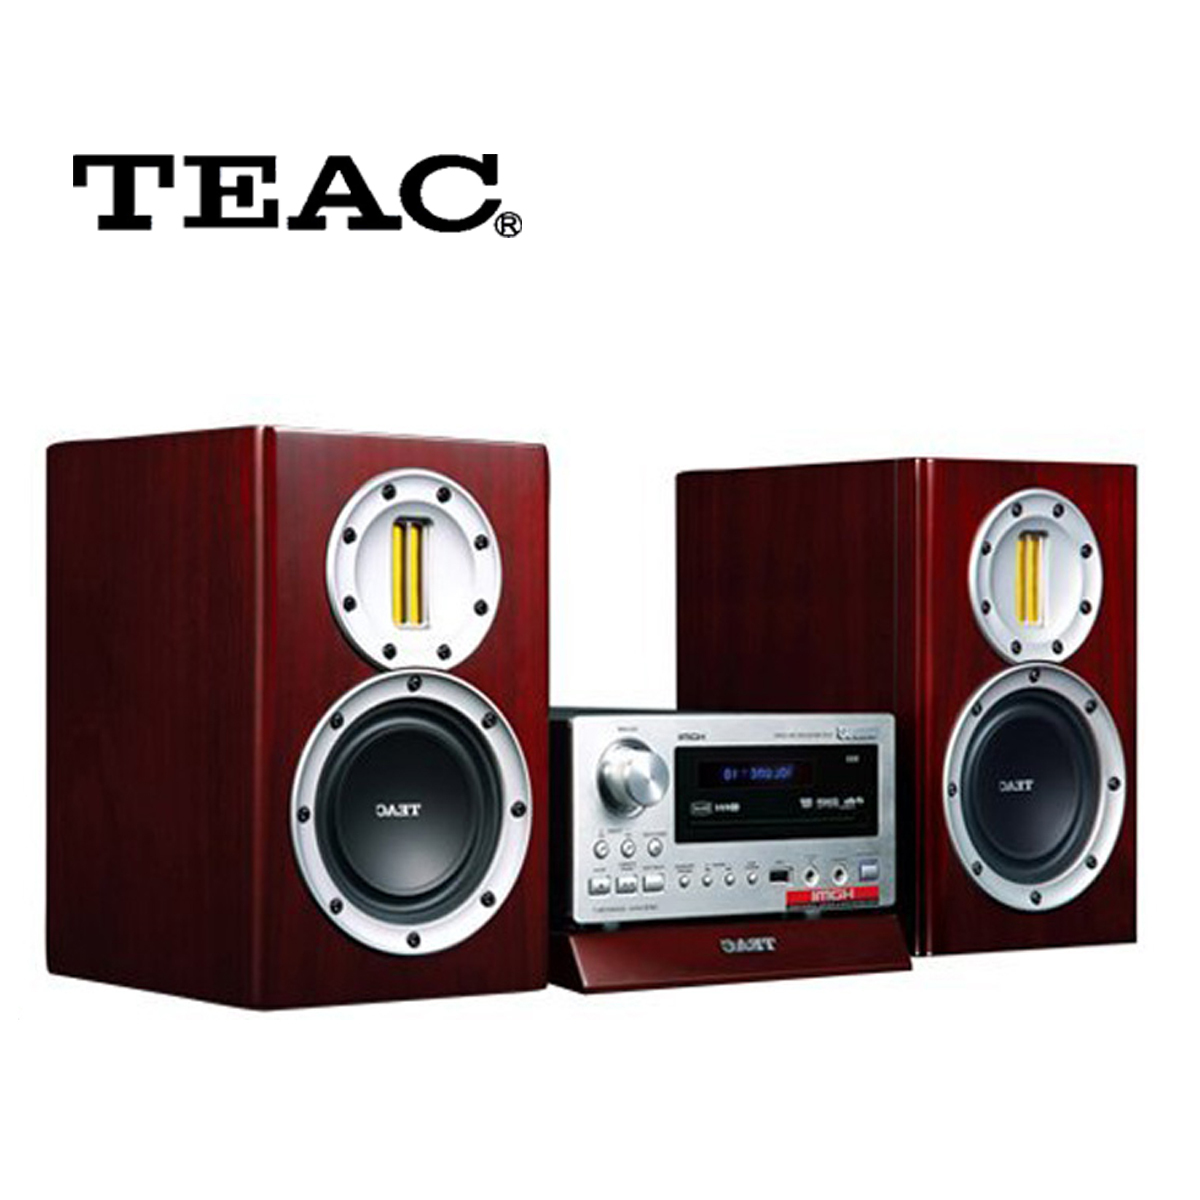 Teac /first acoustic TC-500D Japan boombox speaker HIFI HD cable TV